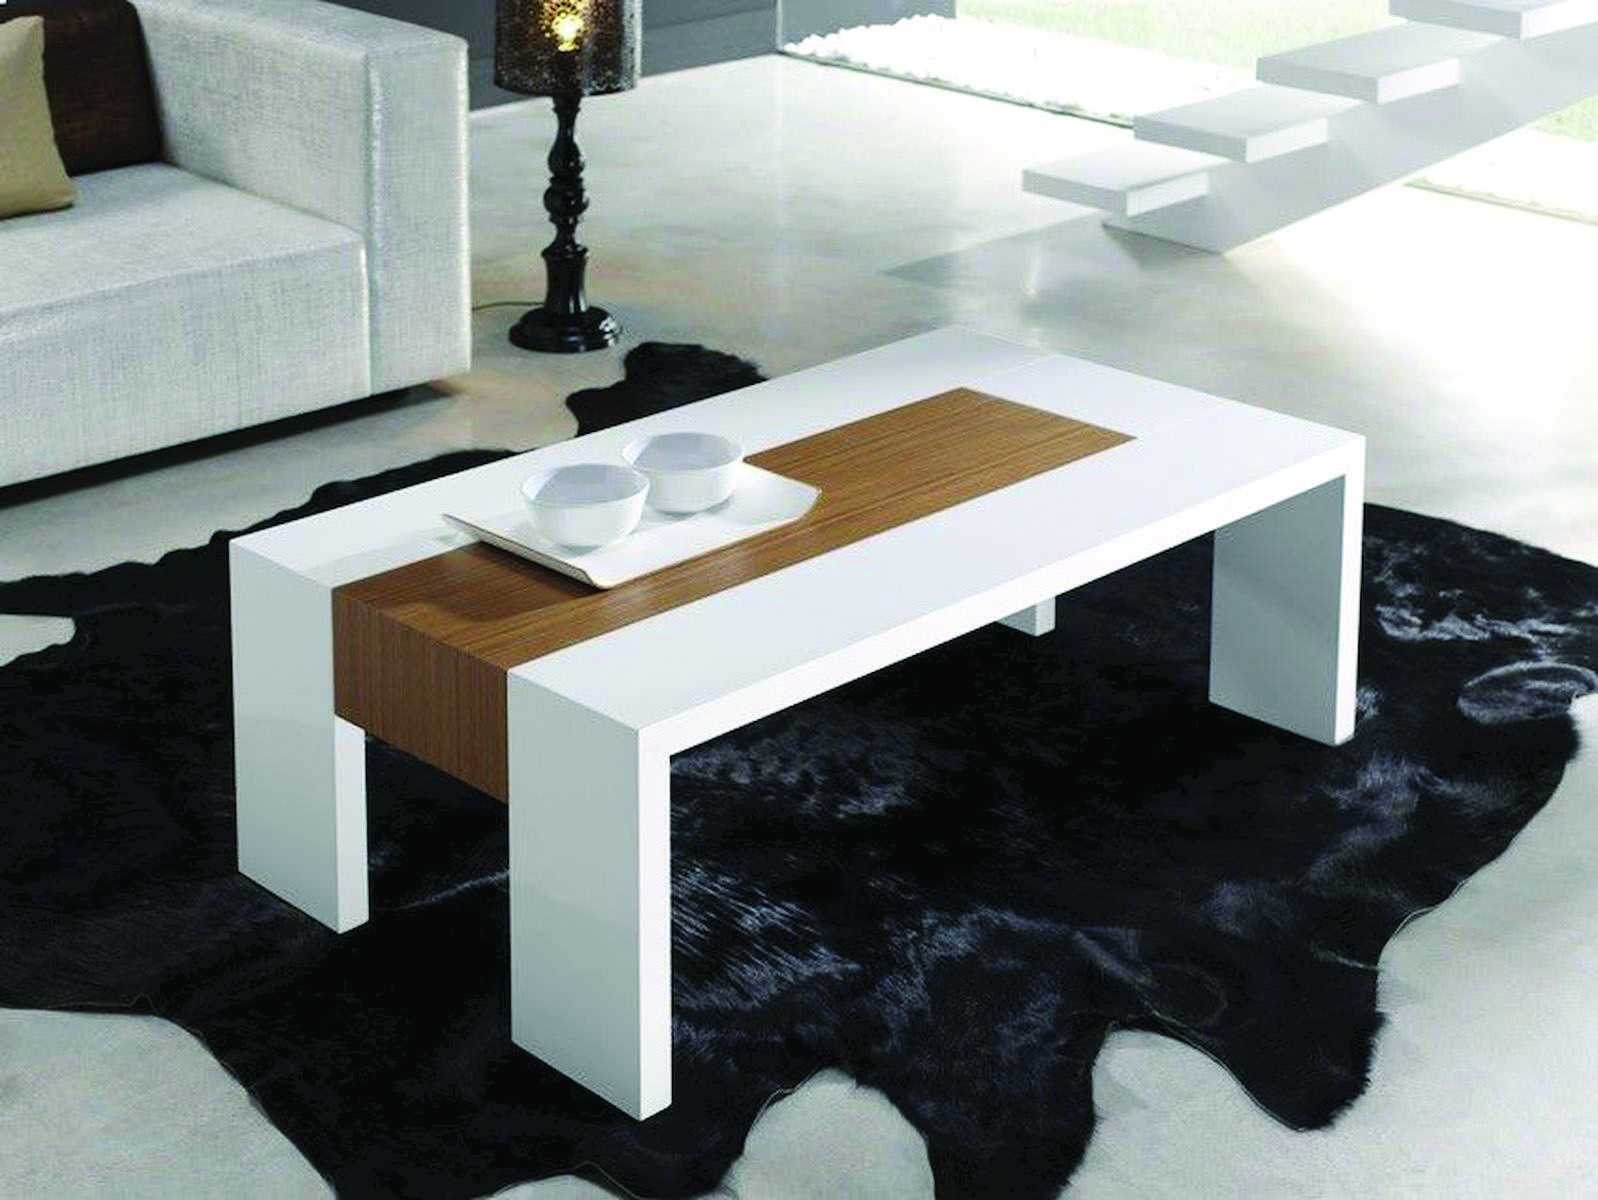 Fashionable Coffee Tables For Sale Montreal That Will Impress You Tea Table Design Wooden Coffee Table Designs Coffee Table Design